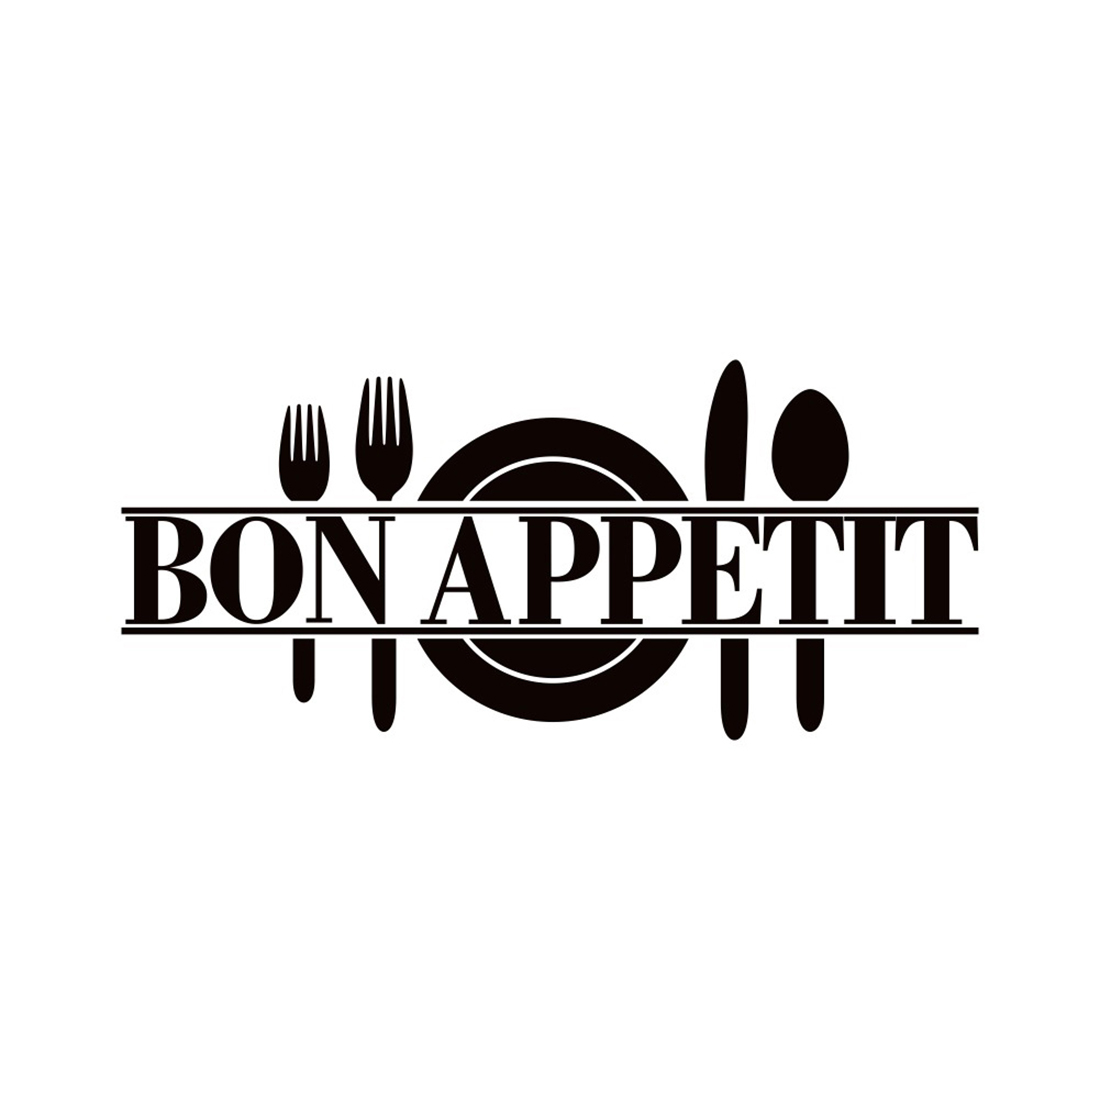 Bon Appetit Cutlery Pattern Kitchen Removable Wall Decal Decor 60x25cm Black